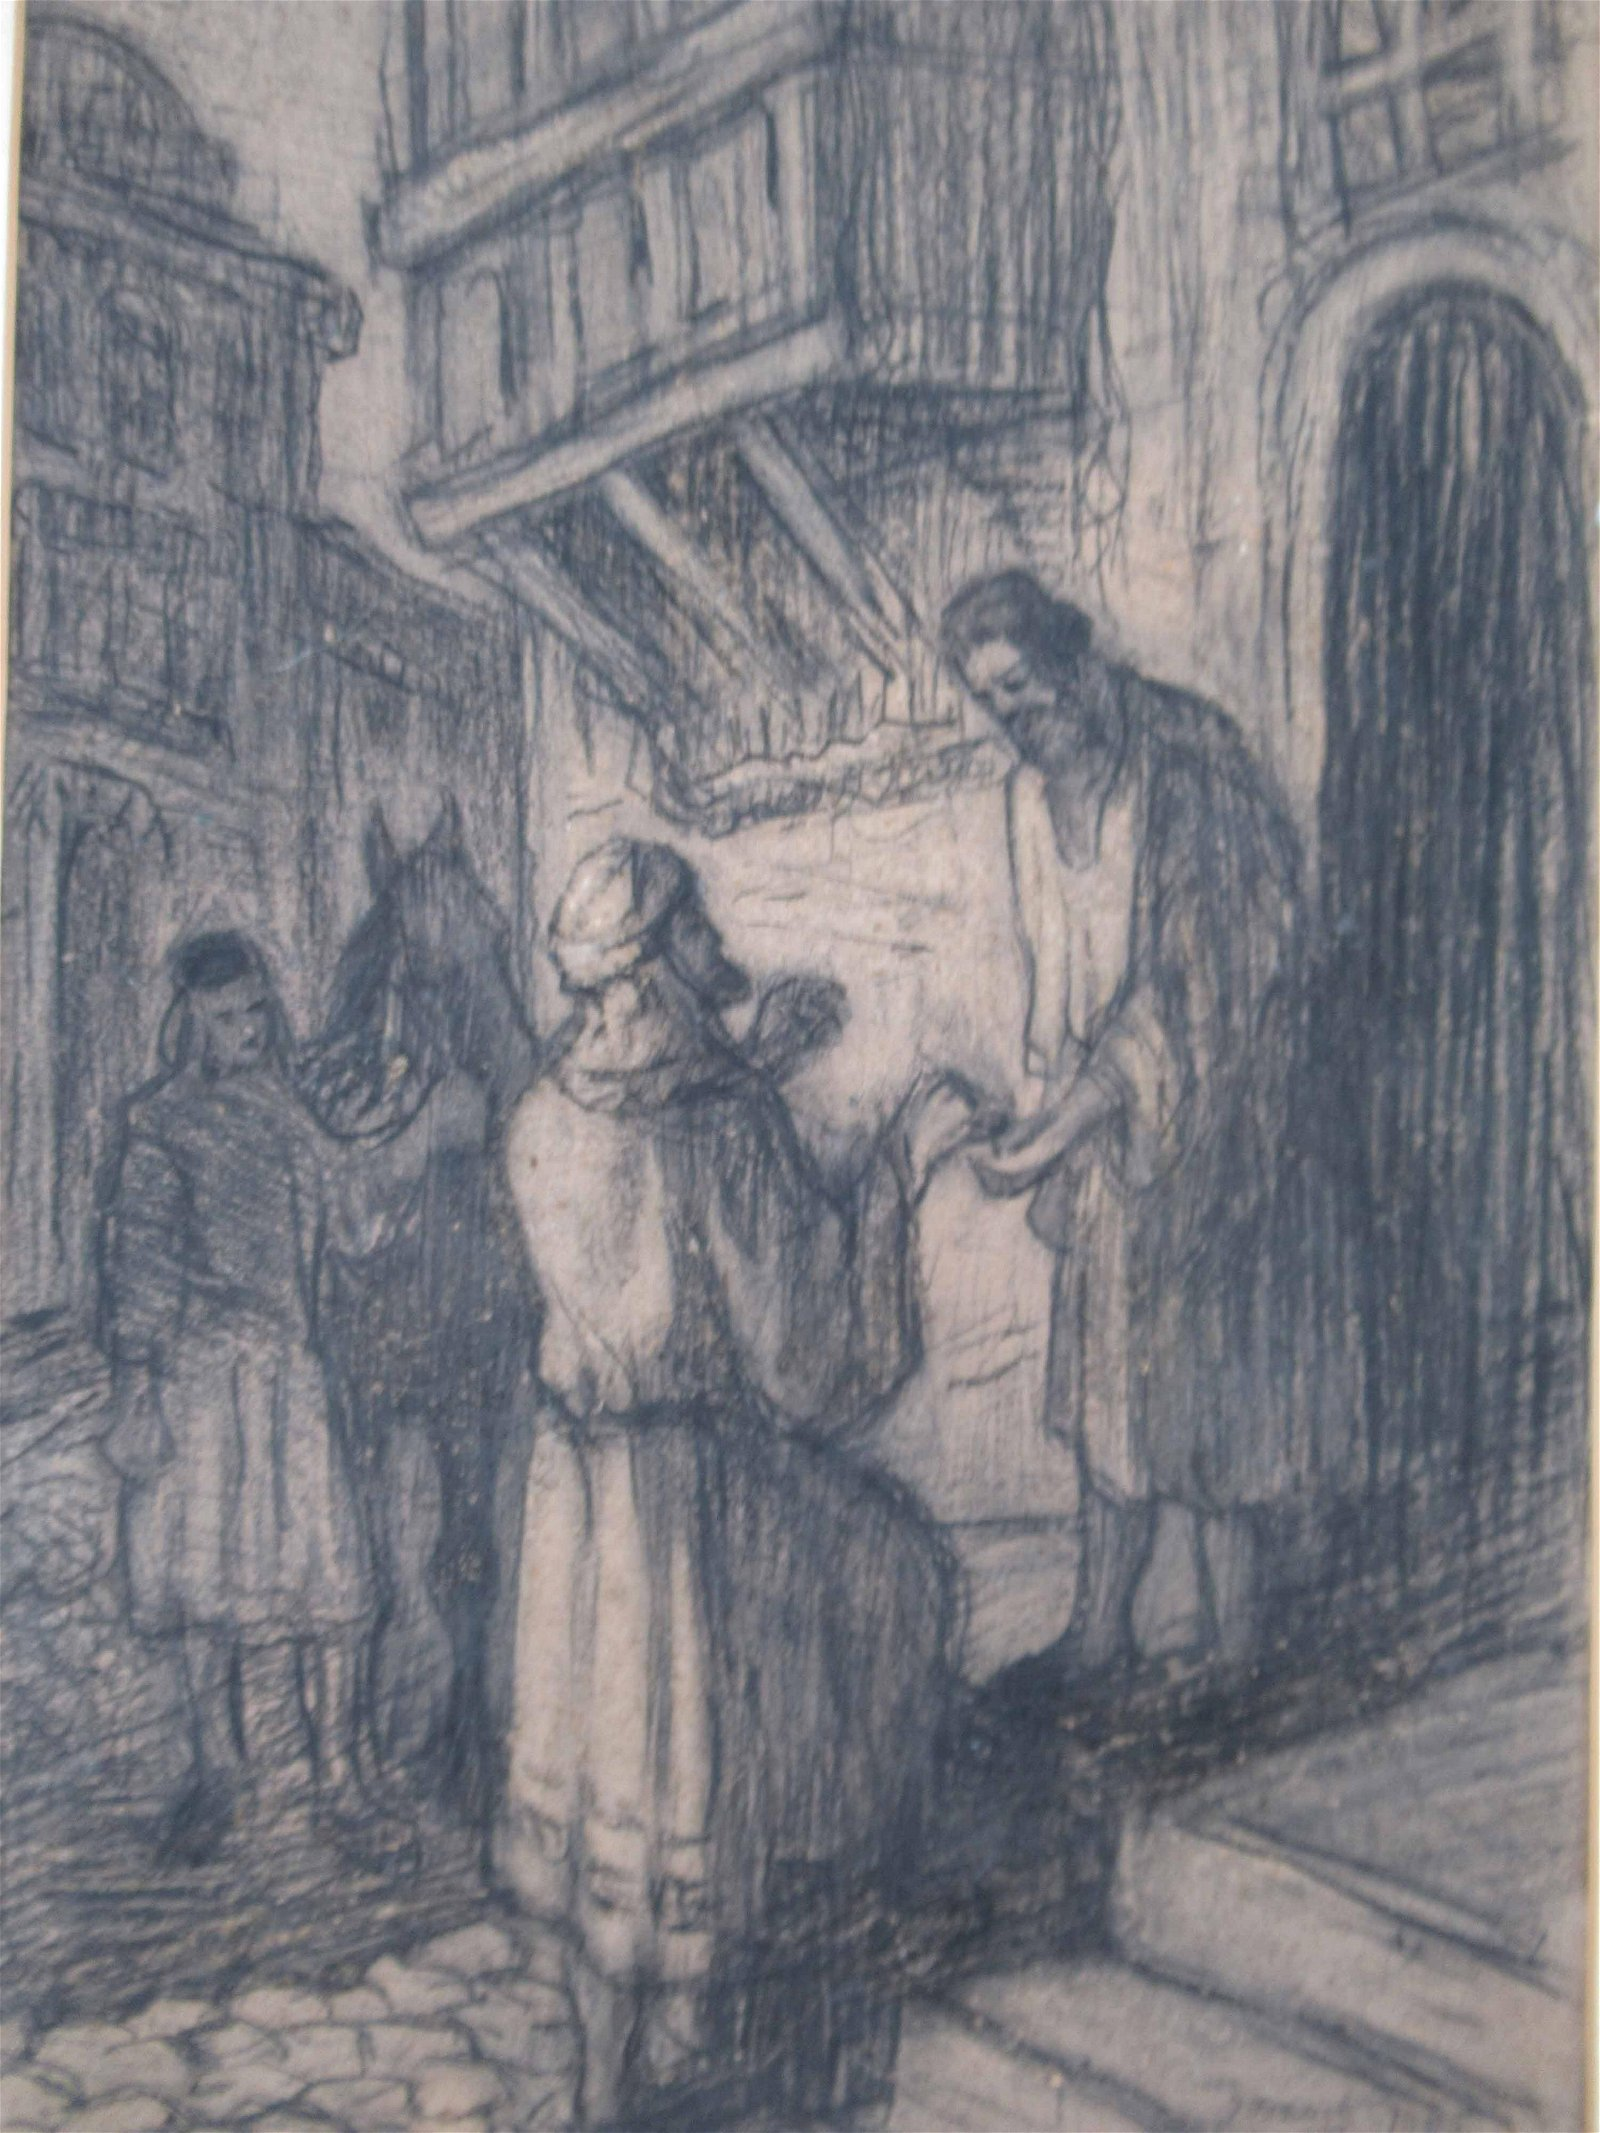 Charcoal Drawing of Wise Men Looking for Room